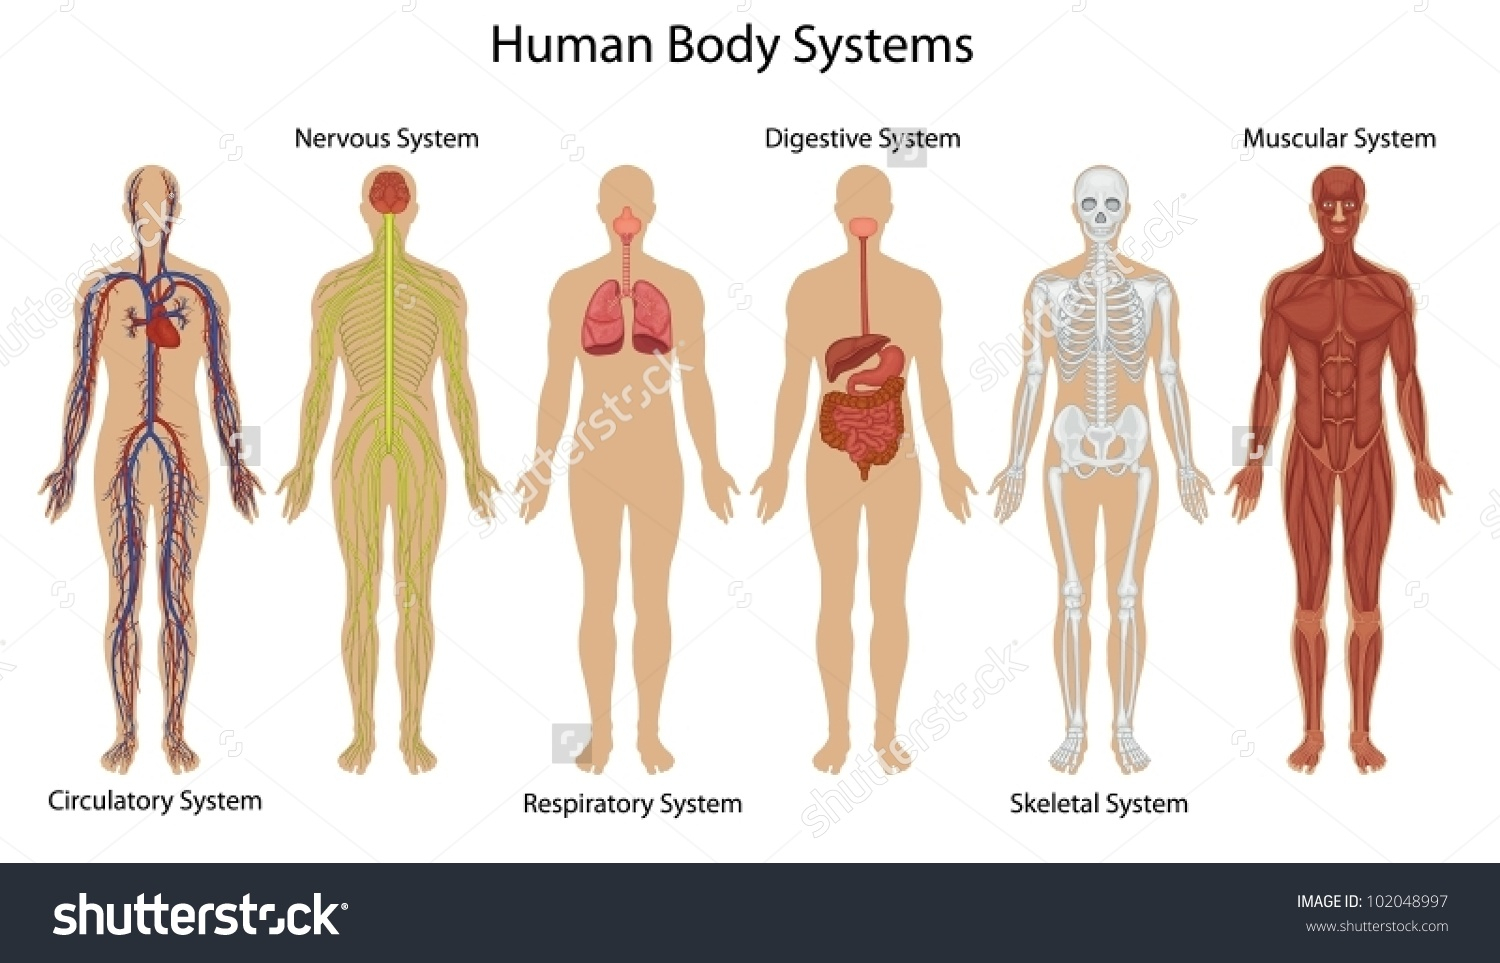 Human Organ Systems For Kids Human Body System Clipart.